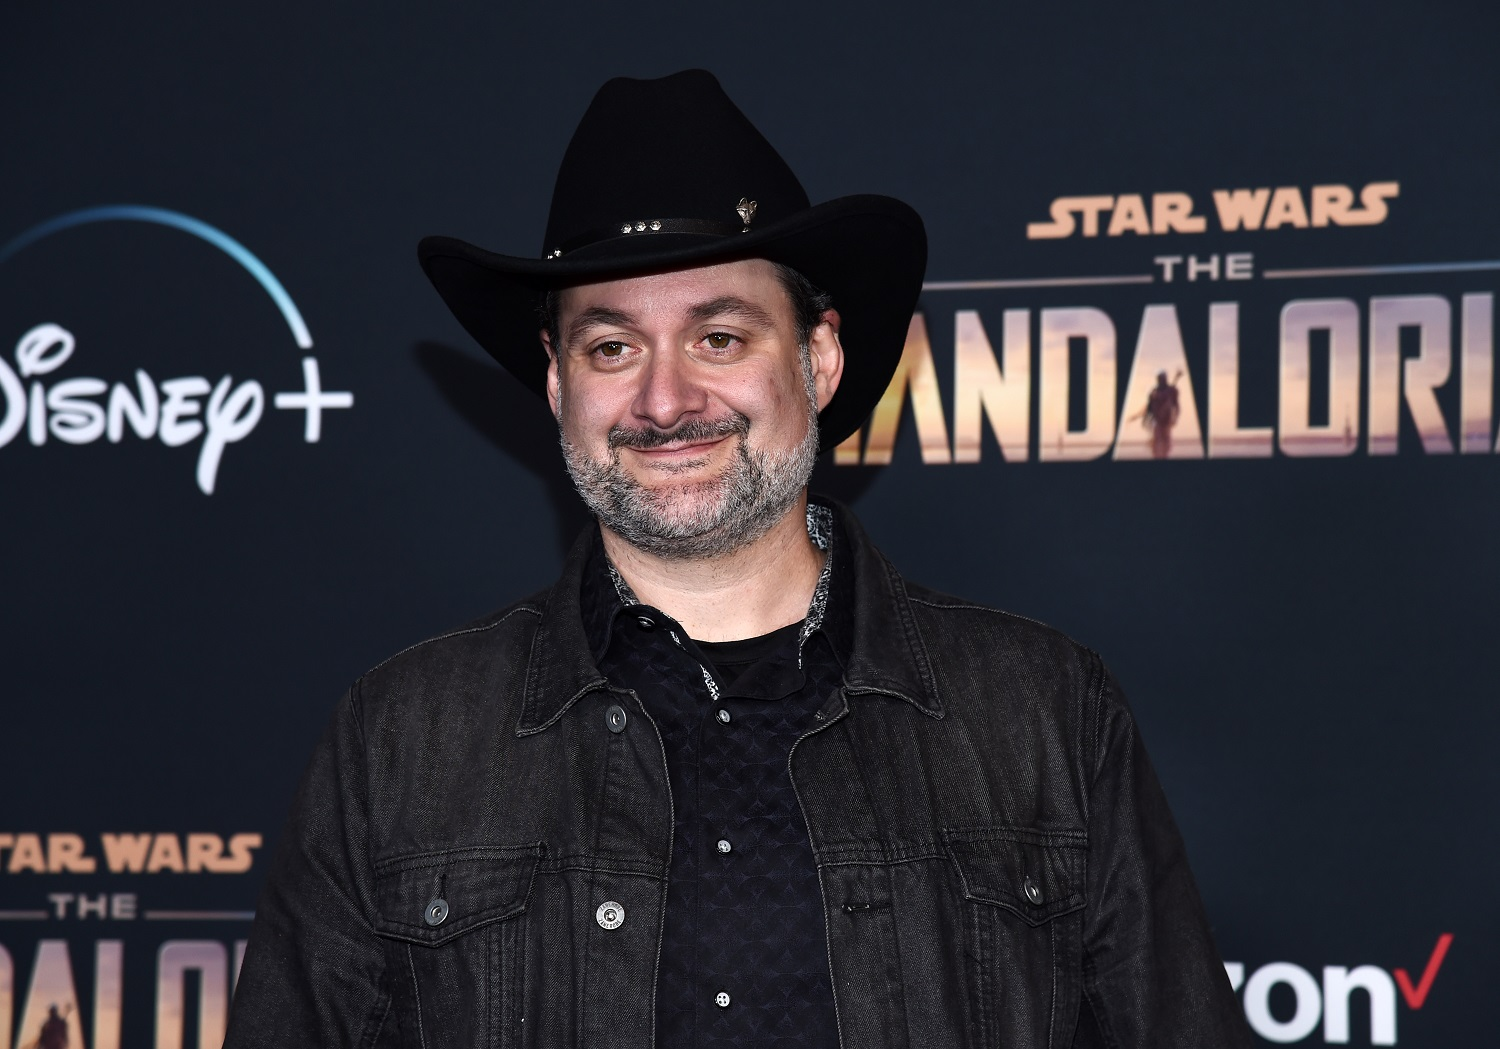 Dave Filoni from the Mandalorian